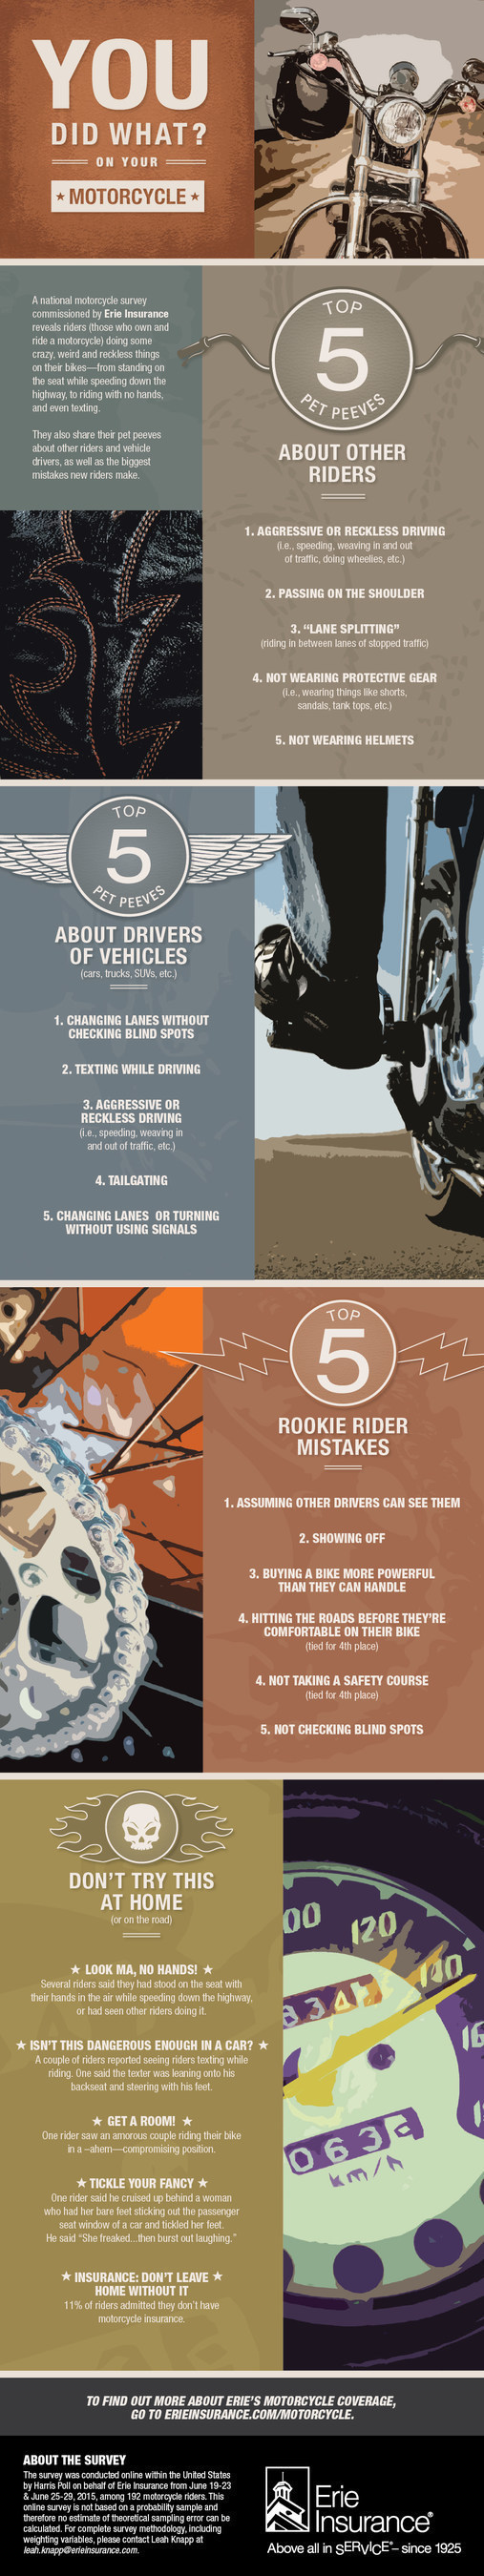 Erie Insurance motorcycle survey reveals riders' top 5 pet peeves. The survey also found riders doing some weird and crazy things on bikes.